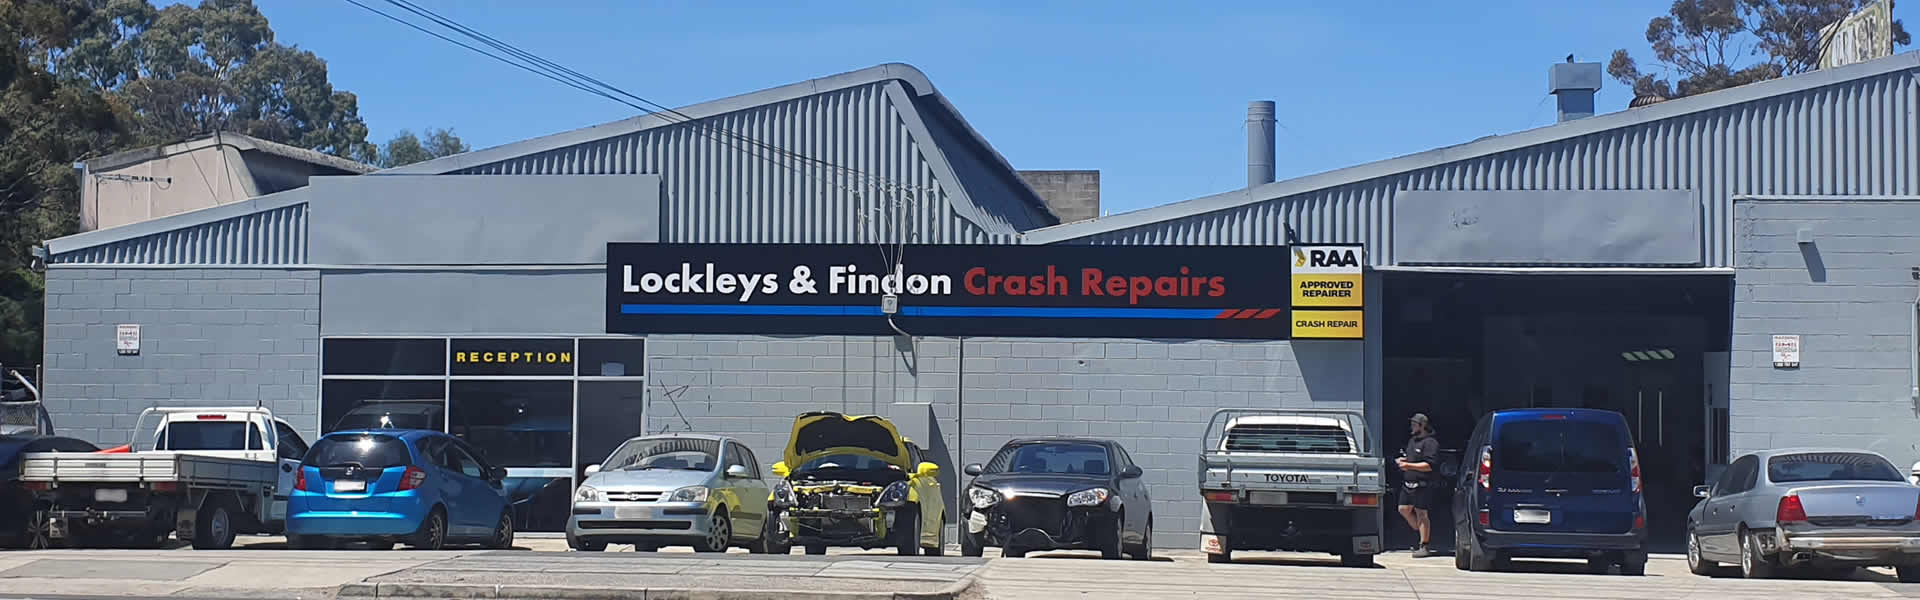 Lockleys-Findon Crash Repairs